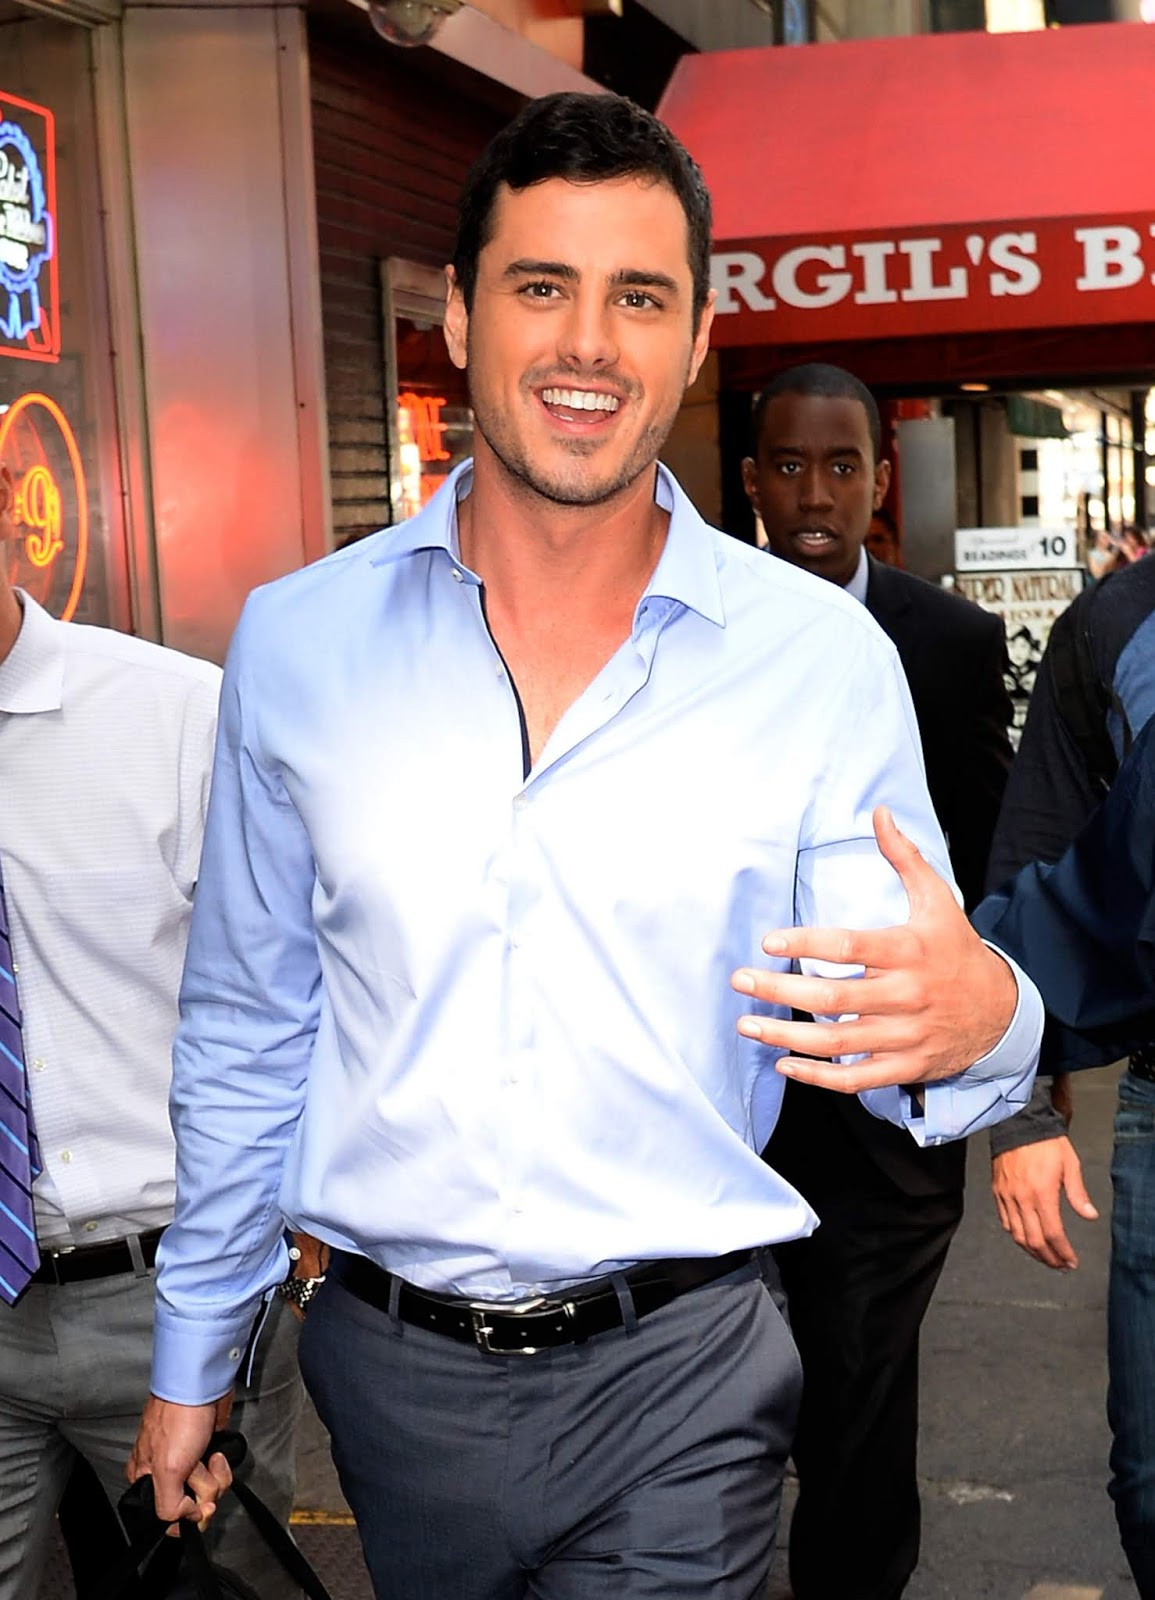 BACHELOR NATION'S BEN HIGGINS